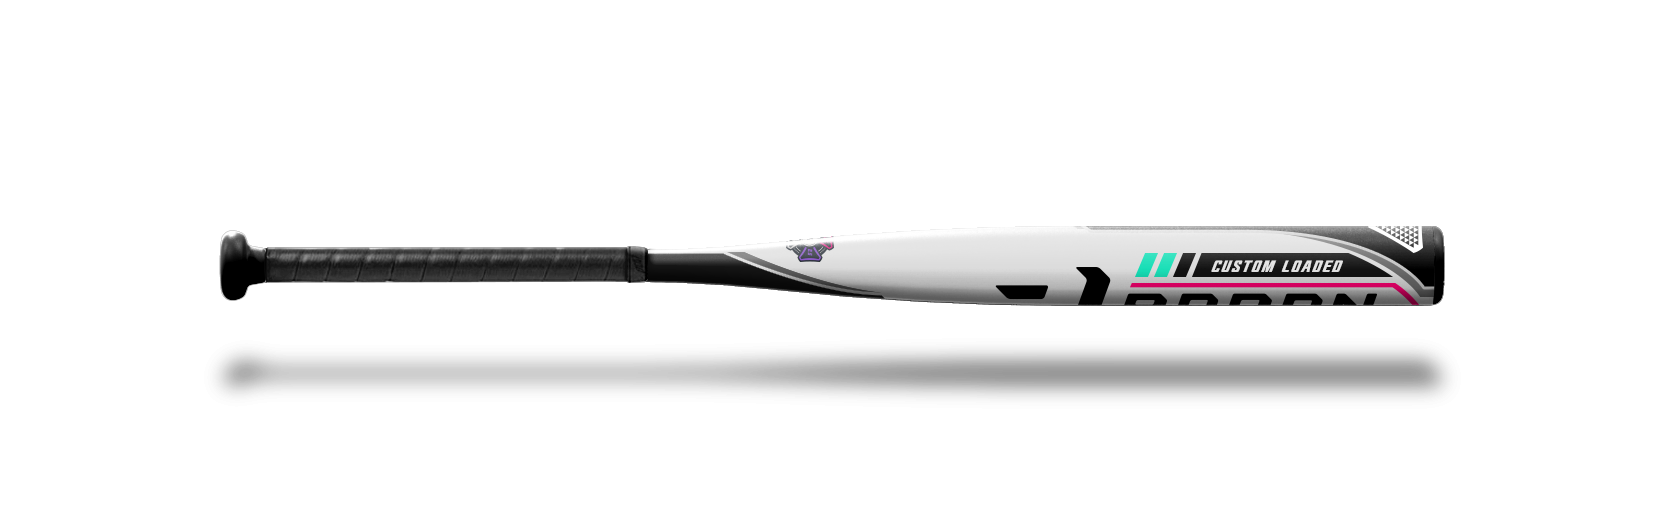 Fastpitch bat graphics softball design